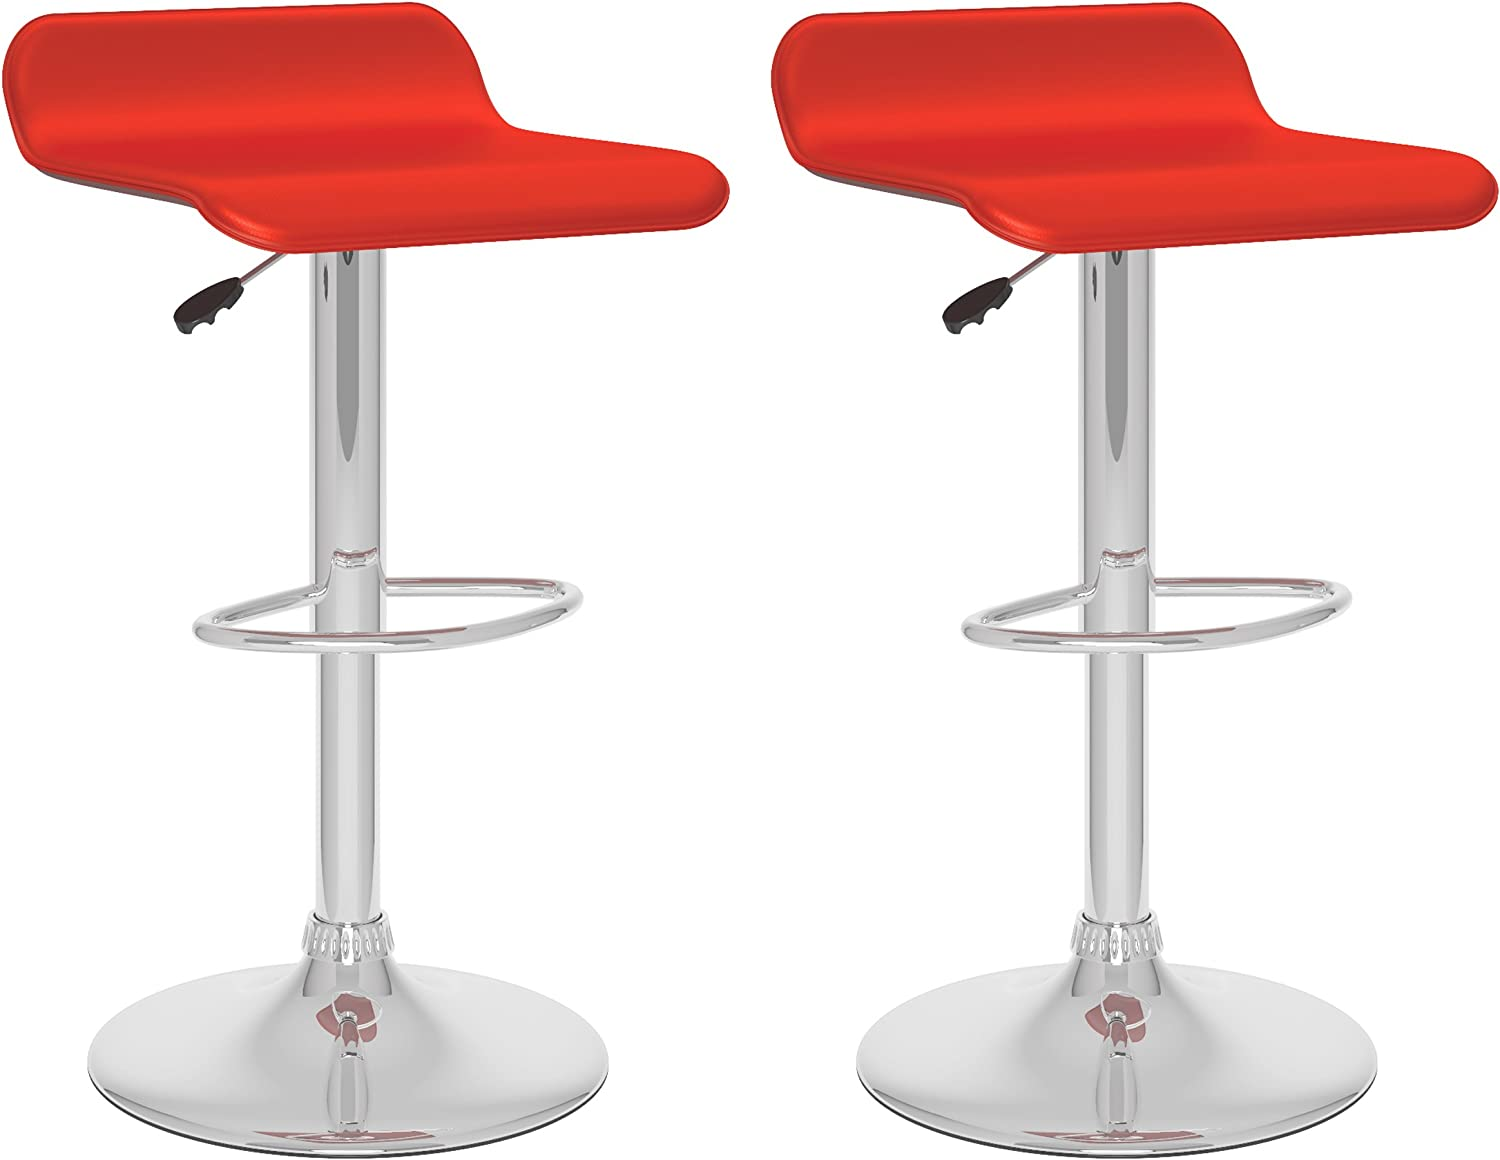 CorLiving B-852-VPD Curved Adjustable Bar Stool, Red Leatherette, Set of 2